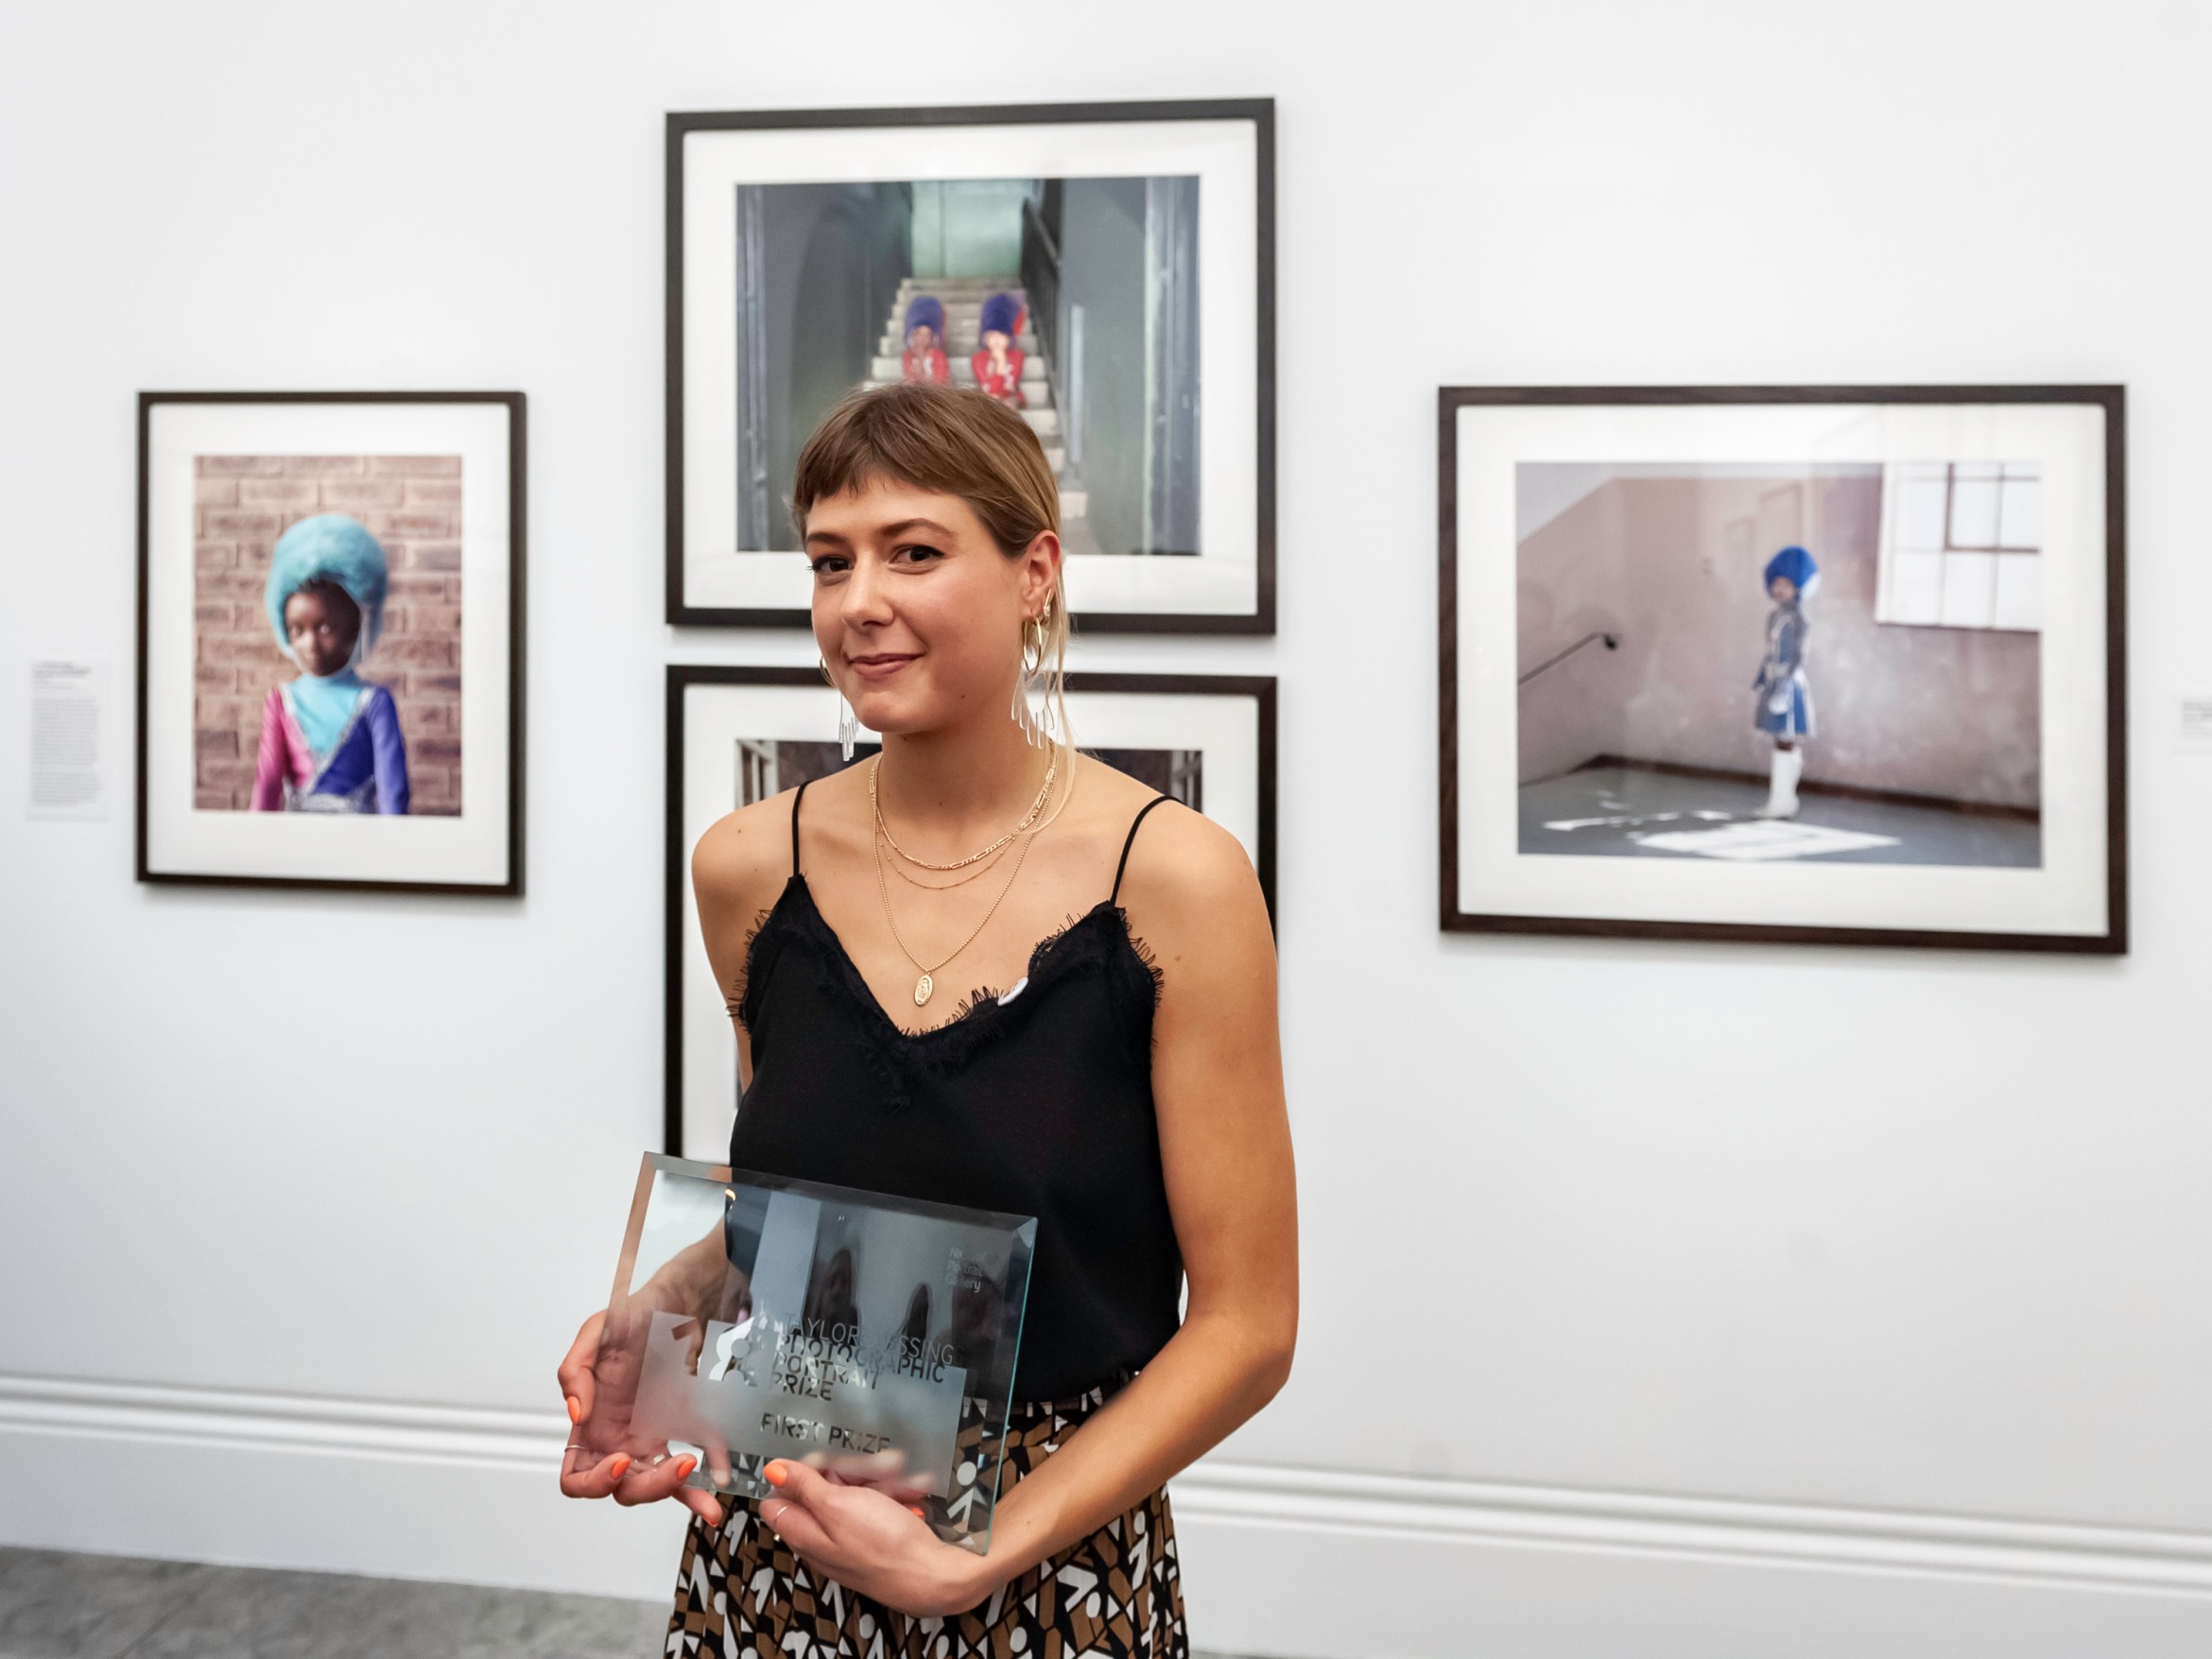 Taylor Wessing Photographic Portrait Prize 2018